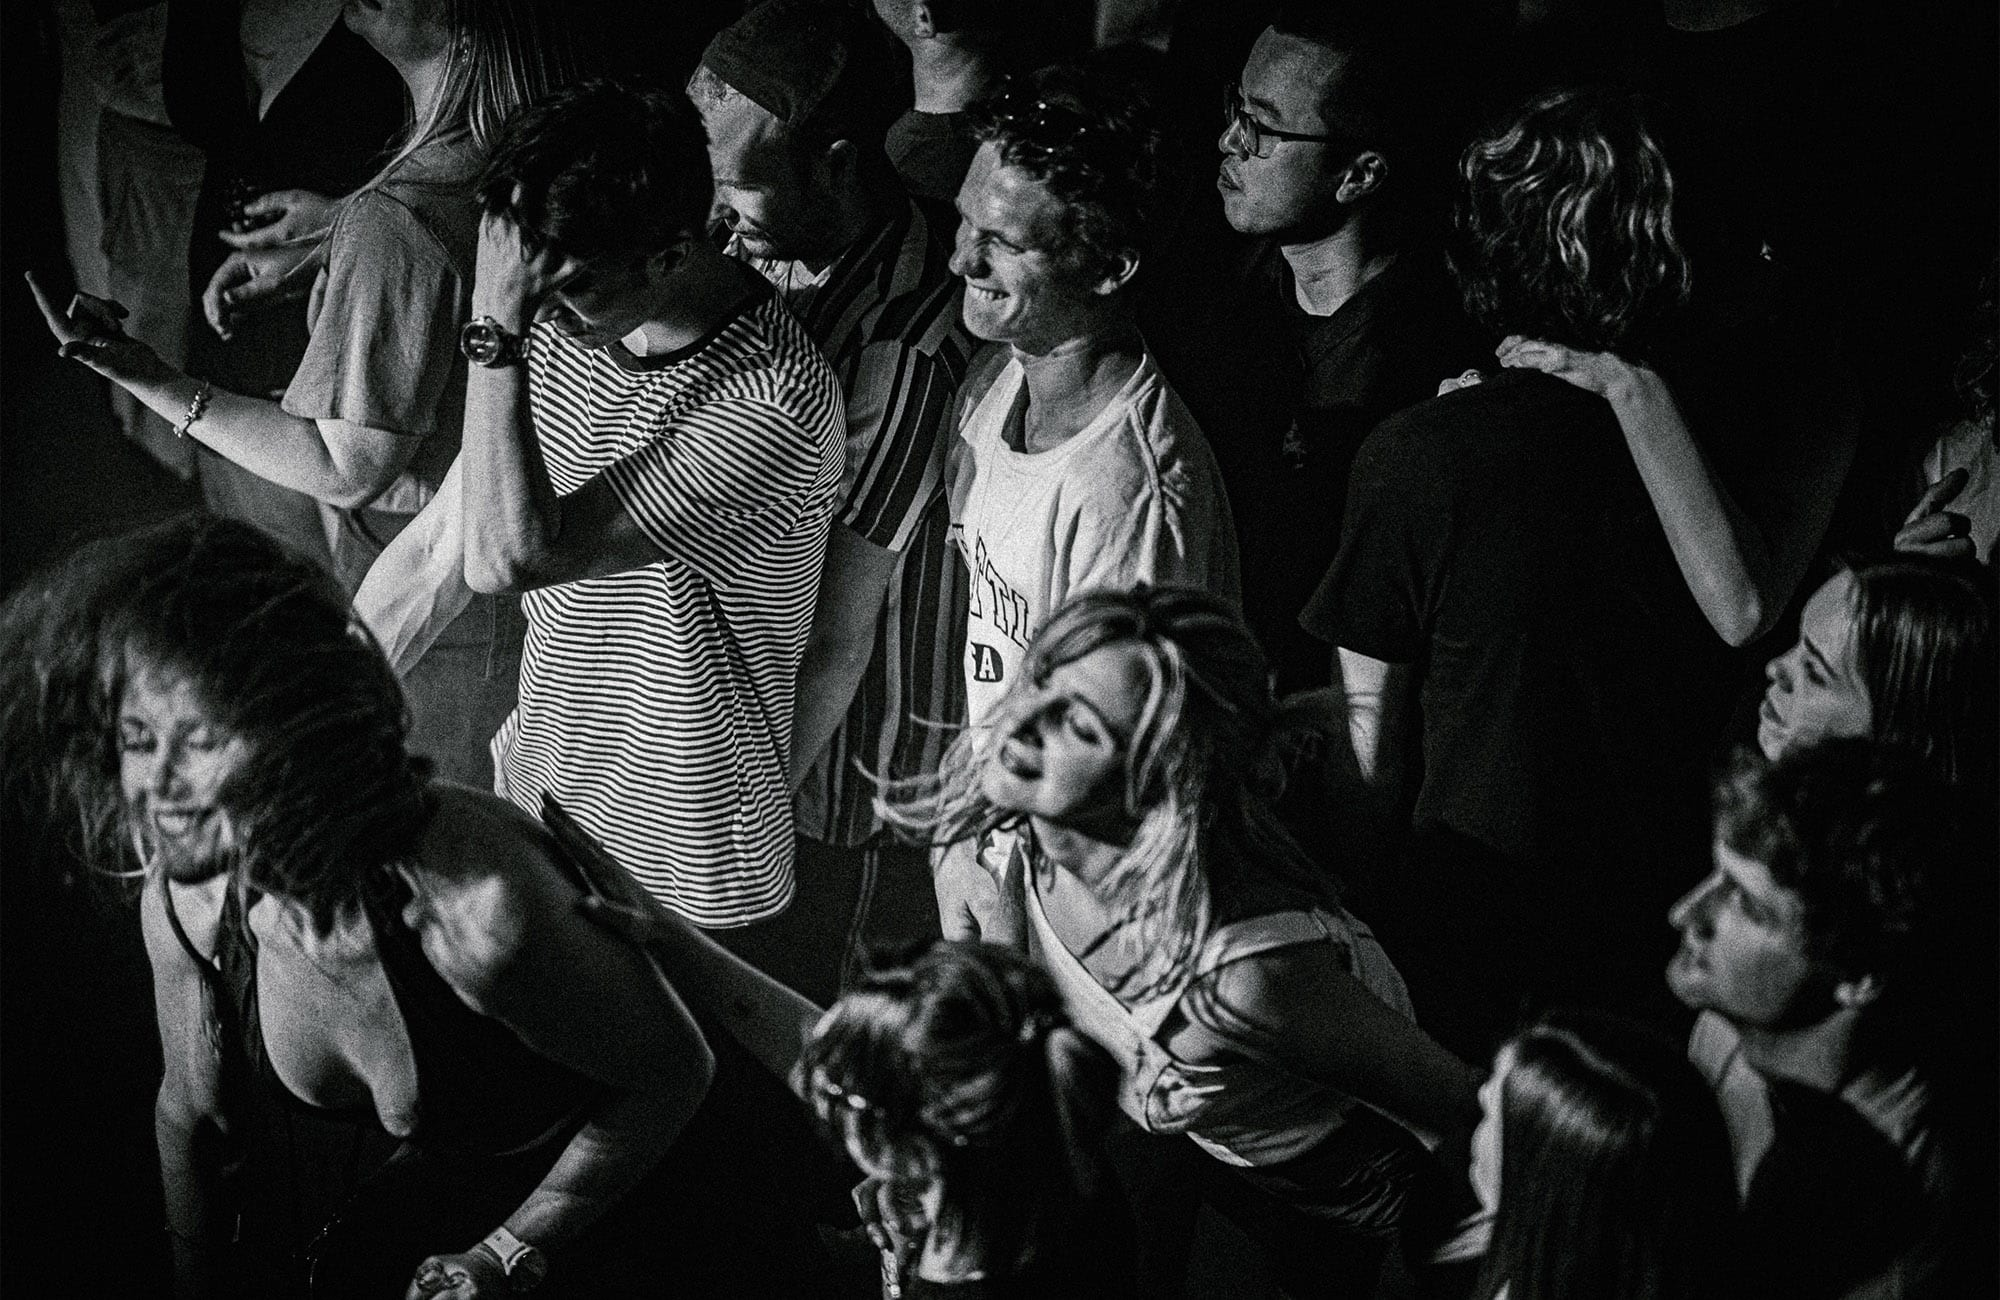 people dance and sing in a crowd at a nightclub